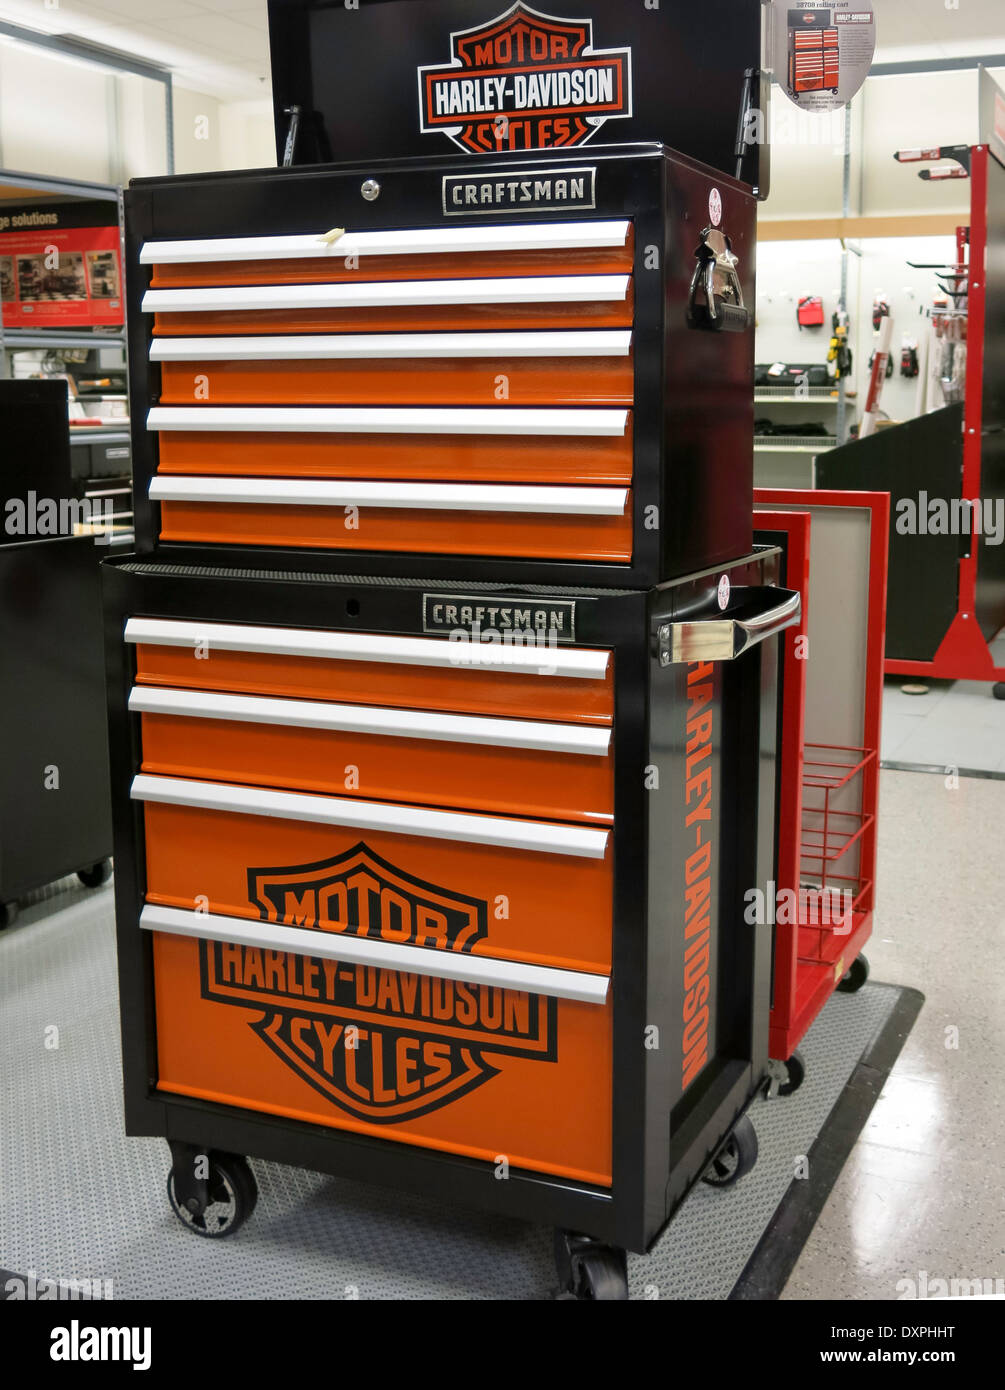 Craftsman Tool Box Harley Davidson Wiring Diagrams Commercial Single Receptacle Outlet 20a 250v 6 20r Bulk 5821 W Ebay Specialty Branded Chest Sears Store Stock Rh Alamy Com Boxes